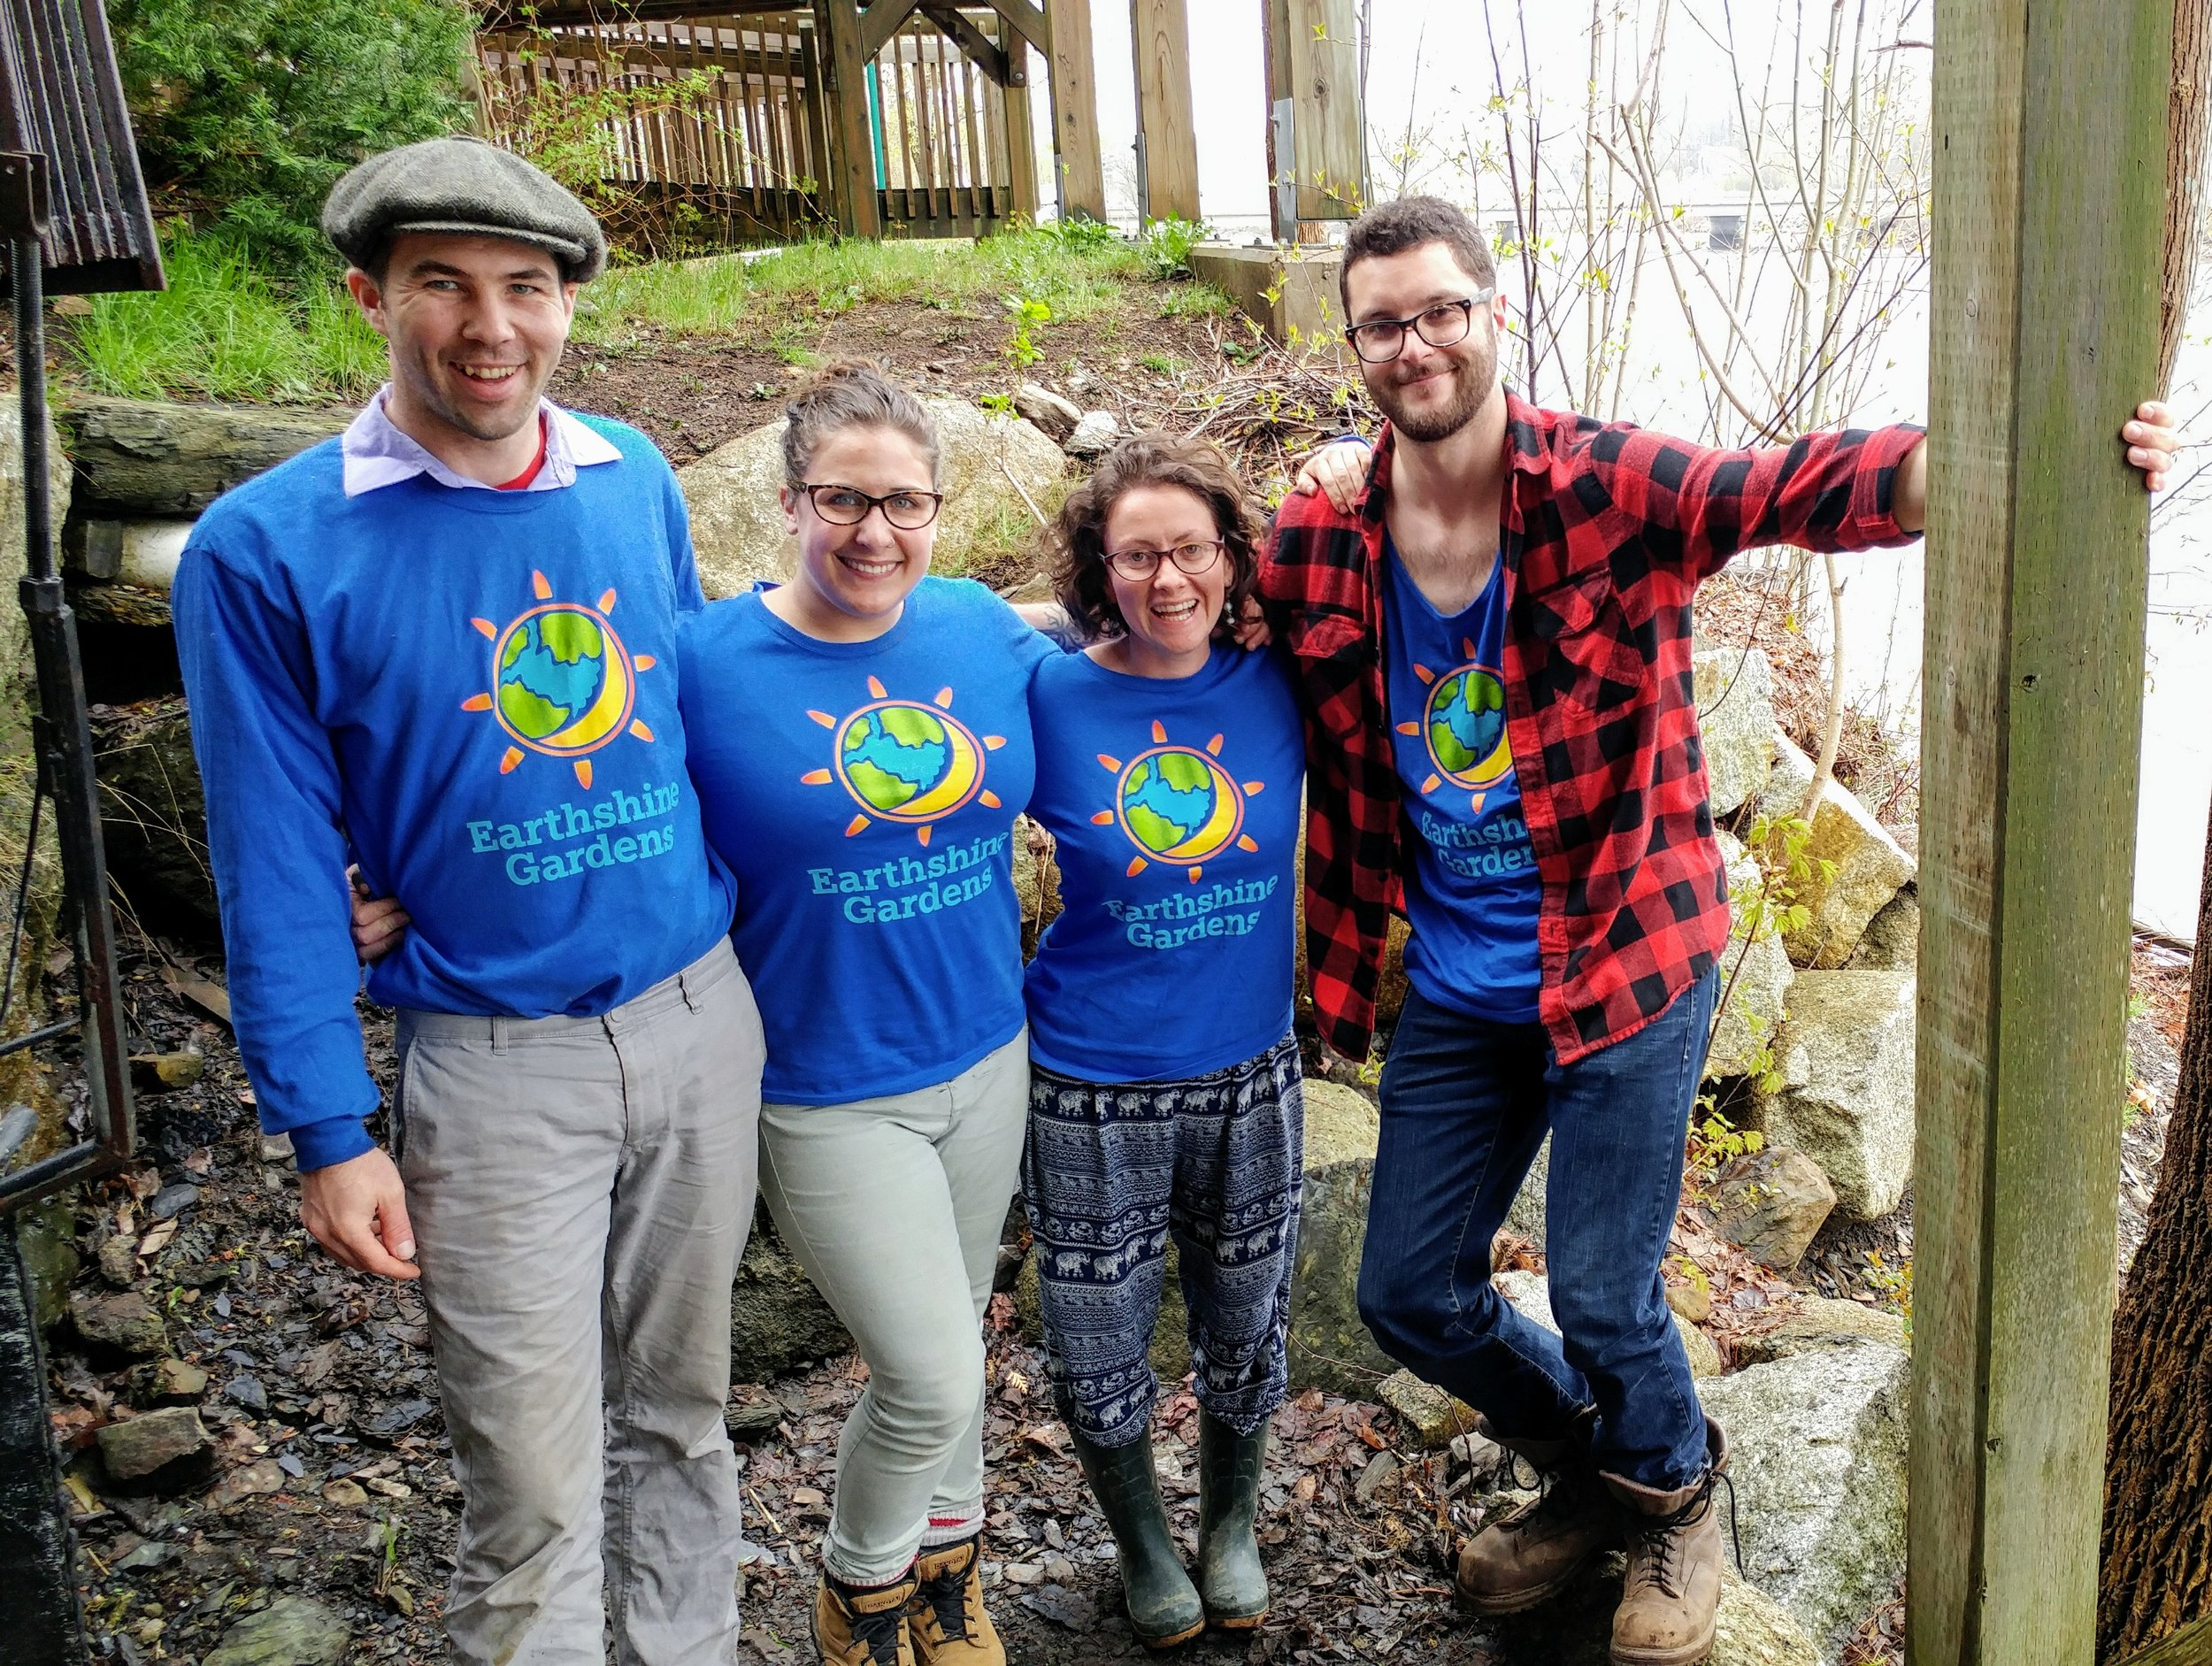 Earthshine Gardens '  staff team  (from left)  Guy Doucette ,  Caitlin Doucette , Laura Besaw and  Garett Schwartz .